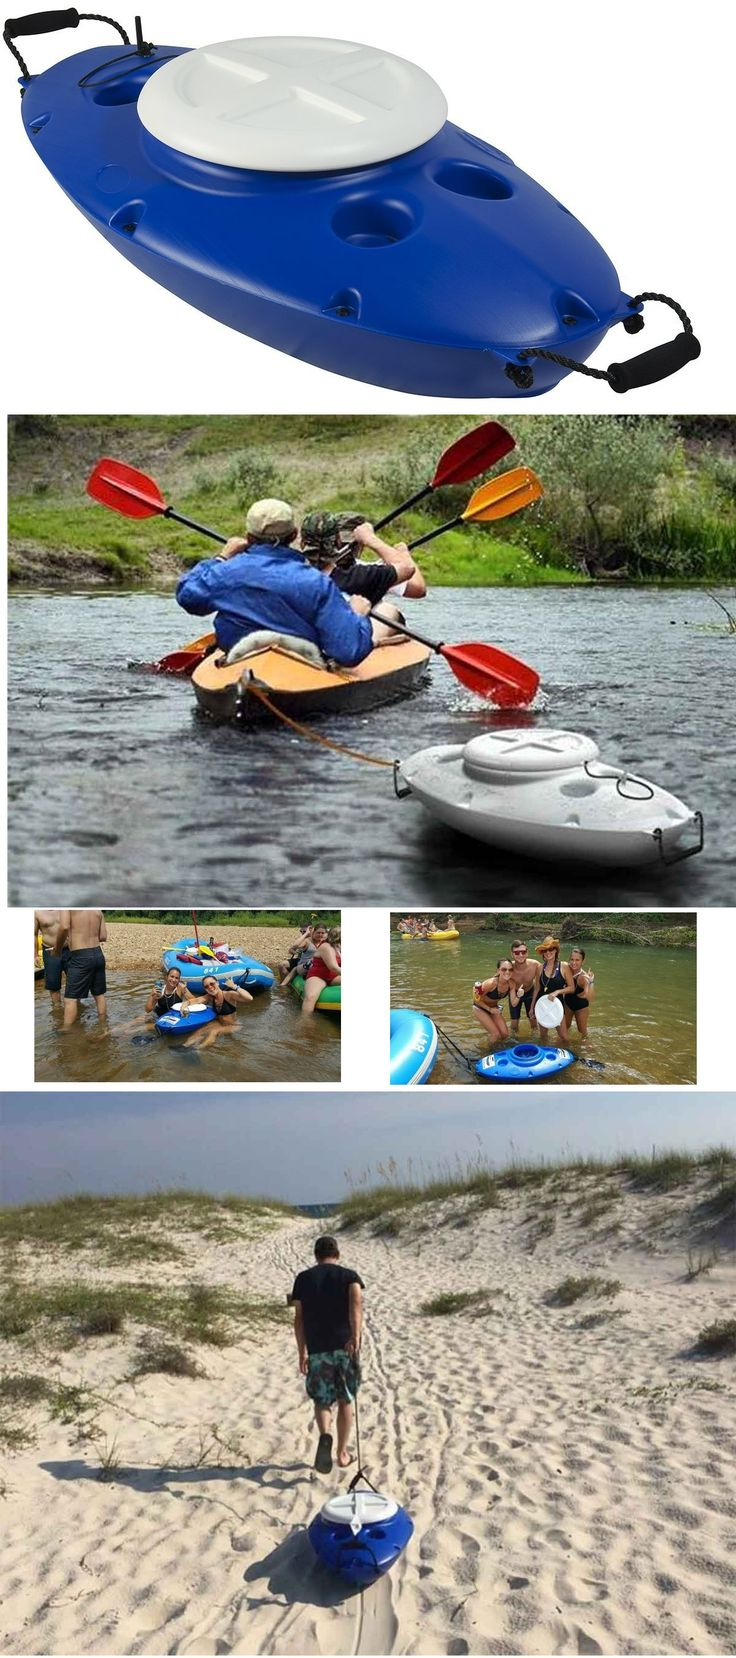 Floating Drink Cooler Kayak | Craze Trend https://uk.pinterest.com/uksportoutdoors/kayakiing/pins/